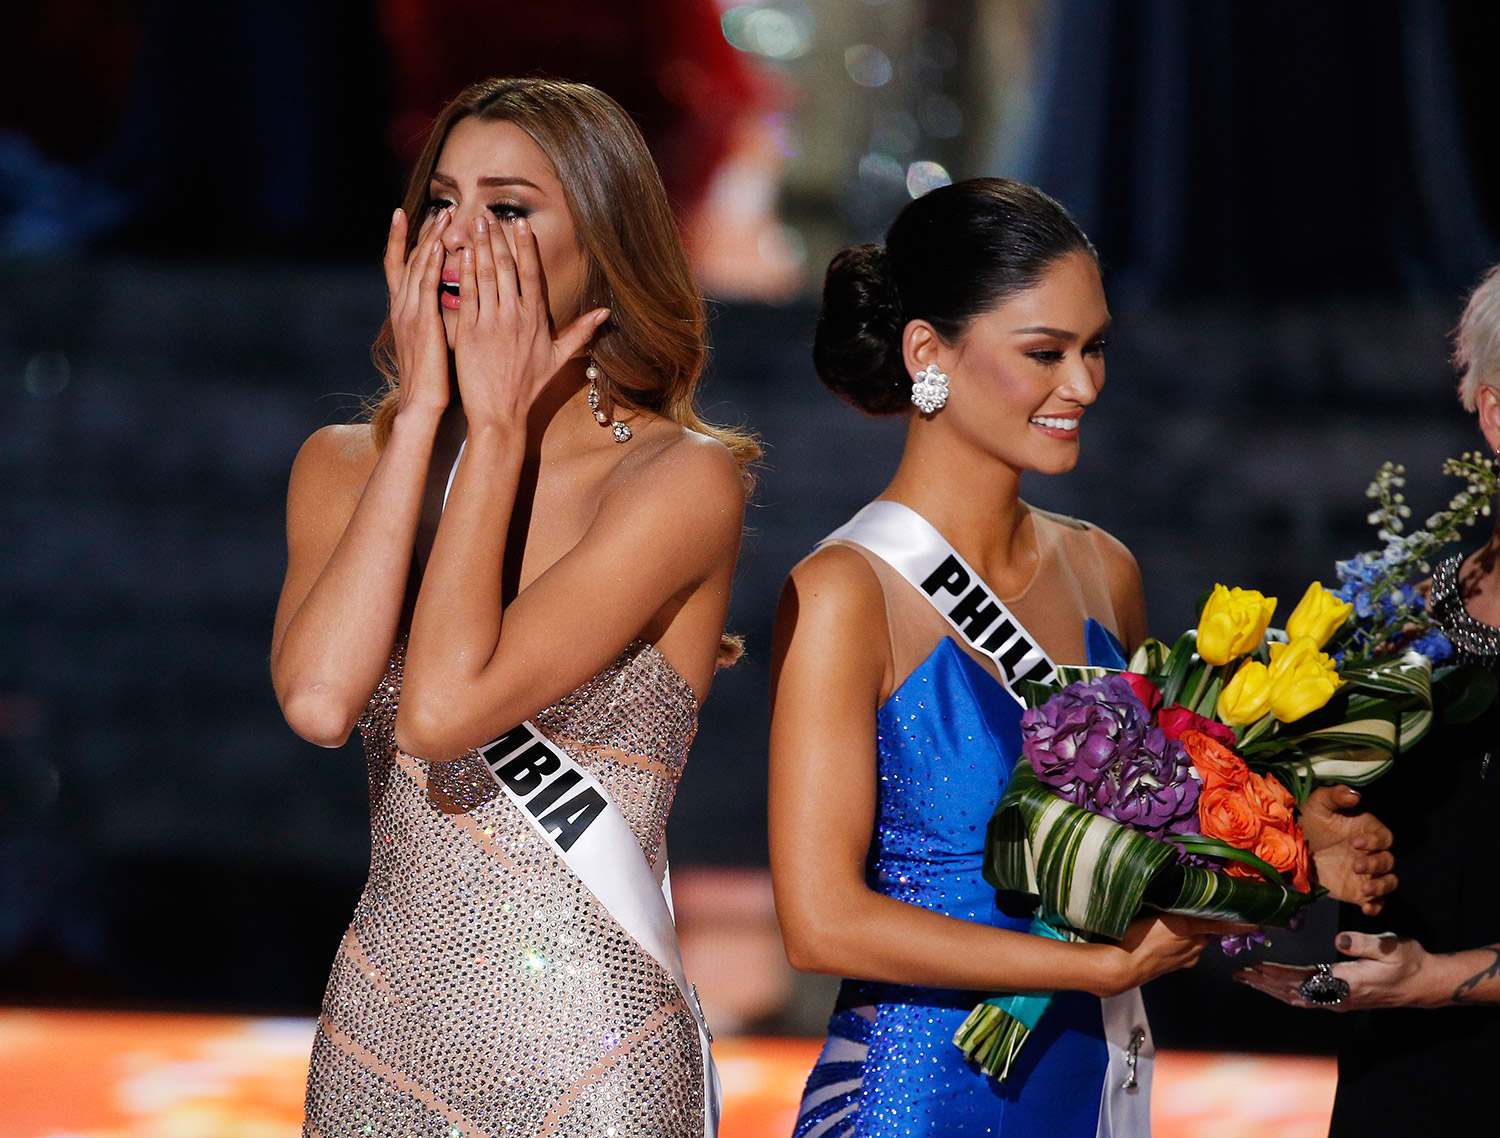 Miss Colombia Ariadna Gutierrez, left, reacts after she was named Miss Universe while standing with Miss Philippines Pia Alonzo Wurtzbach at the Miss Universe pageant Sunday in Las Vegas. Gutierrez was incorrectly crowned before Wurtzbach was named Miss Universe.